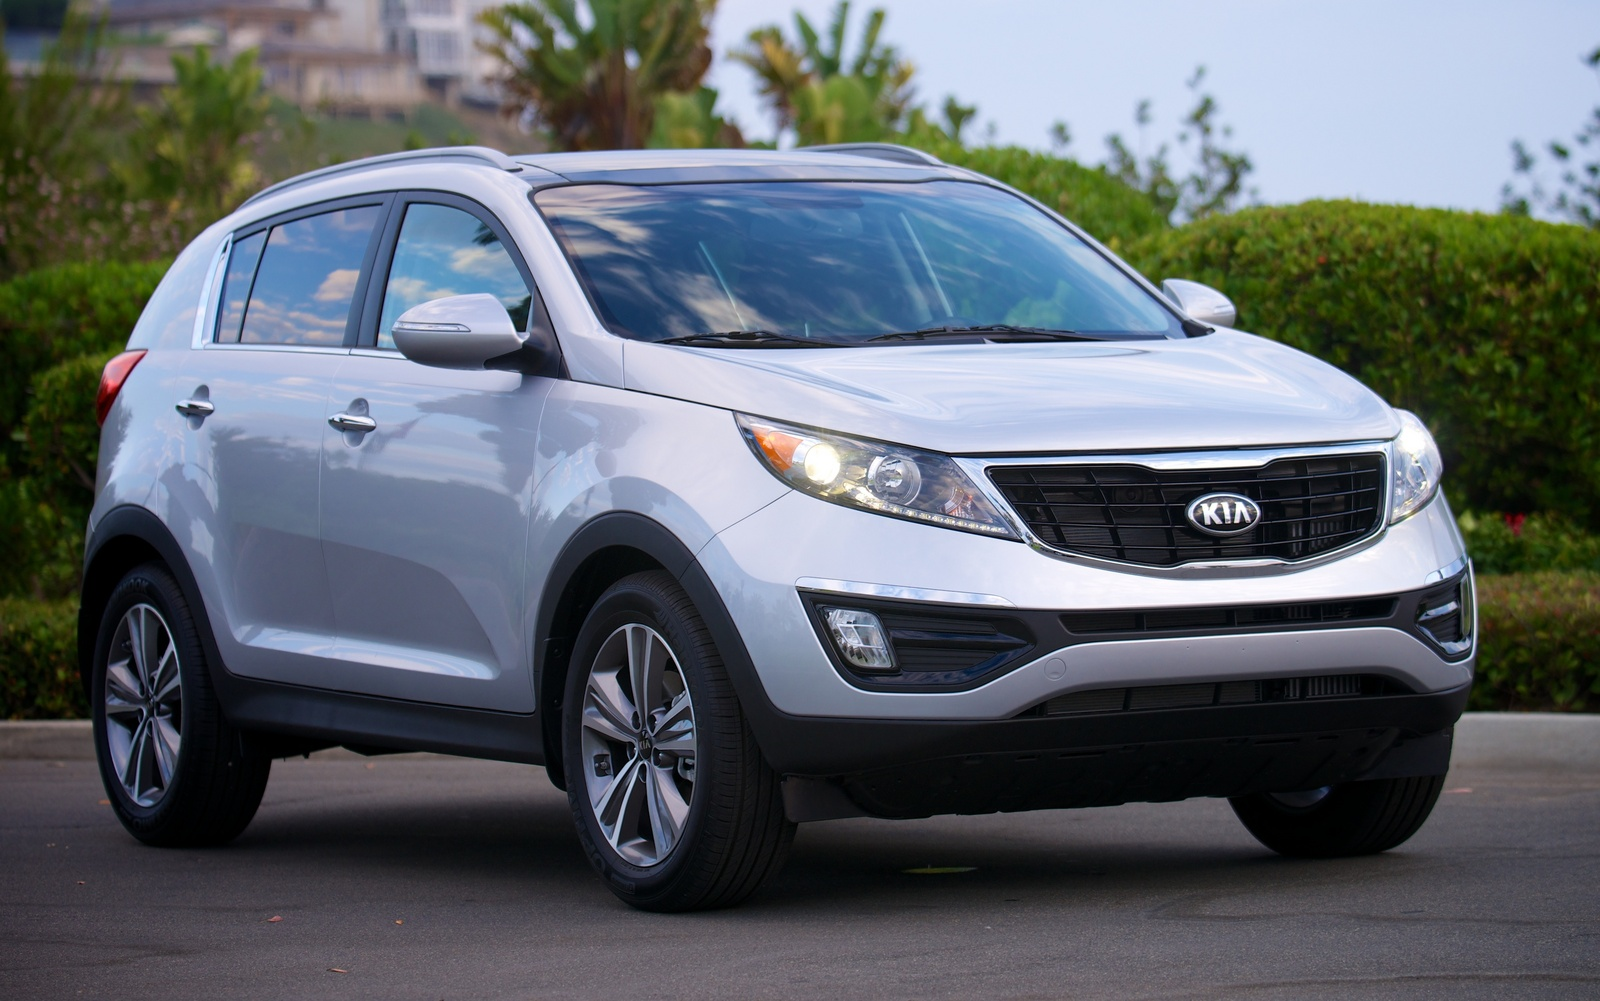 2014 kia sportage review cargurus. Black Bedroom Furniture Sets. Home Design Ideas